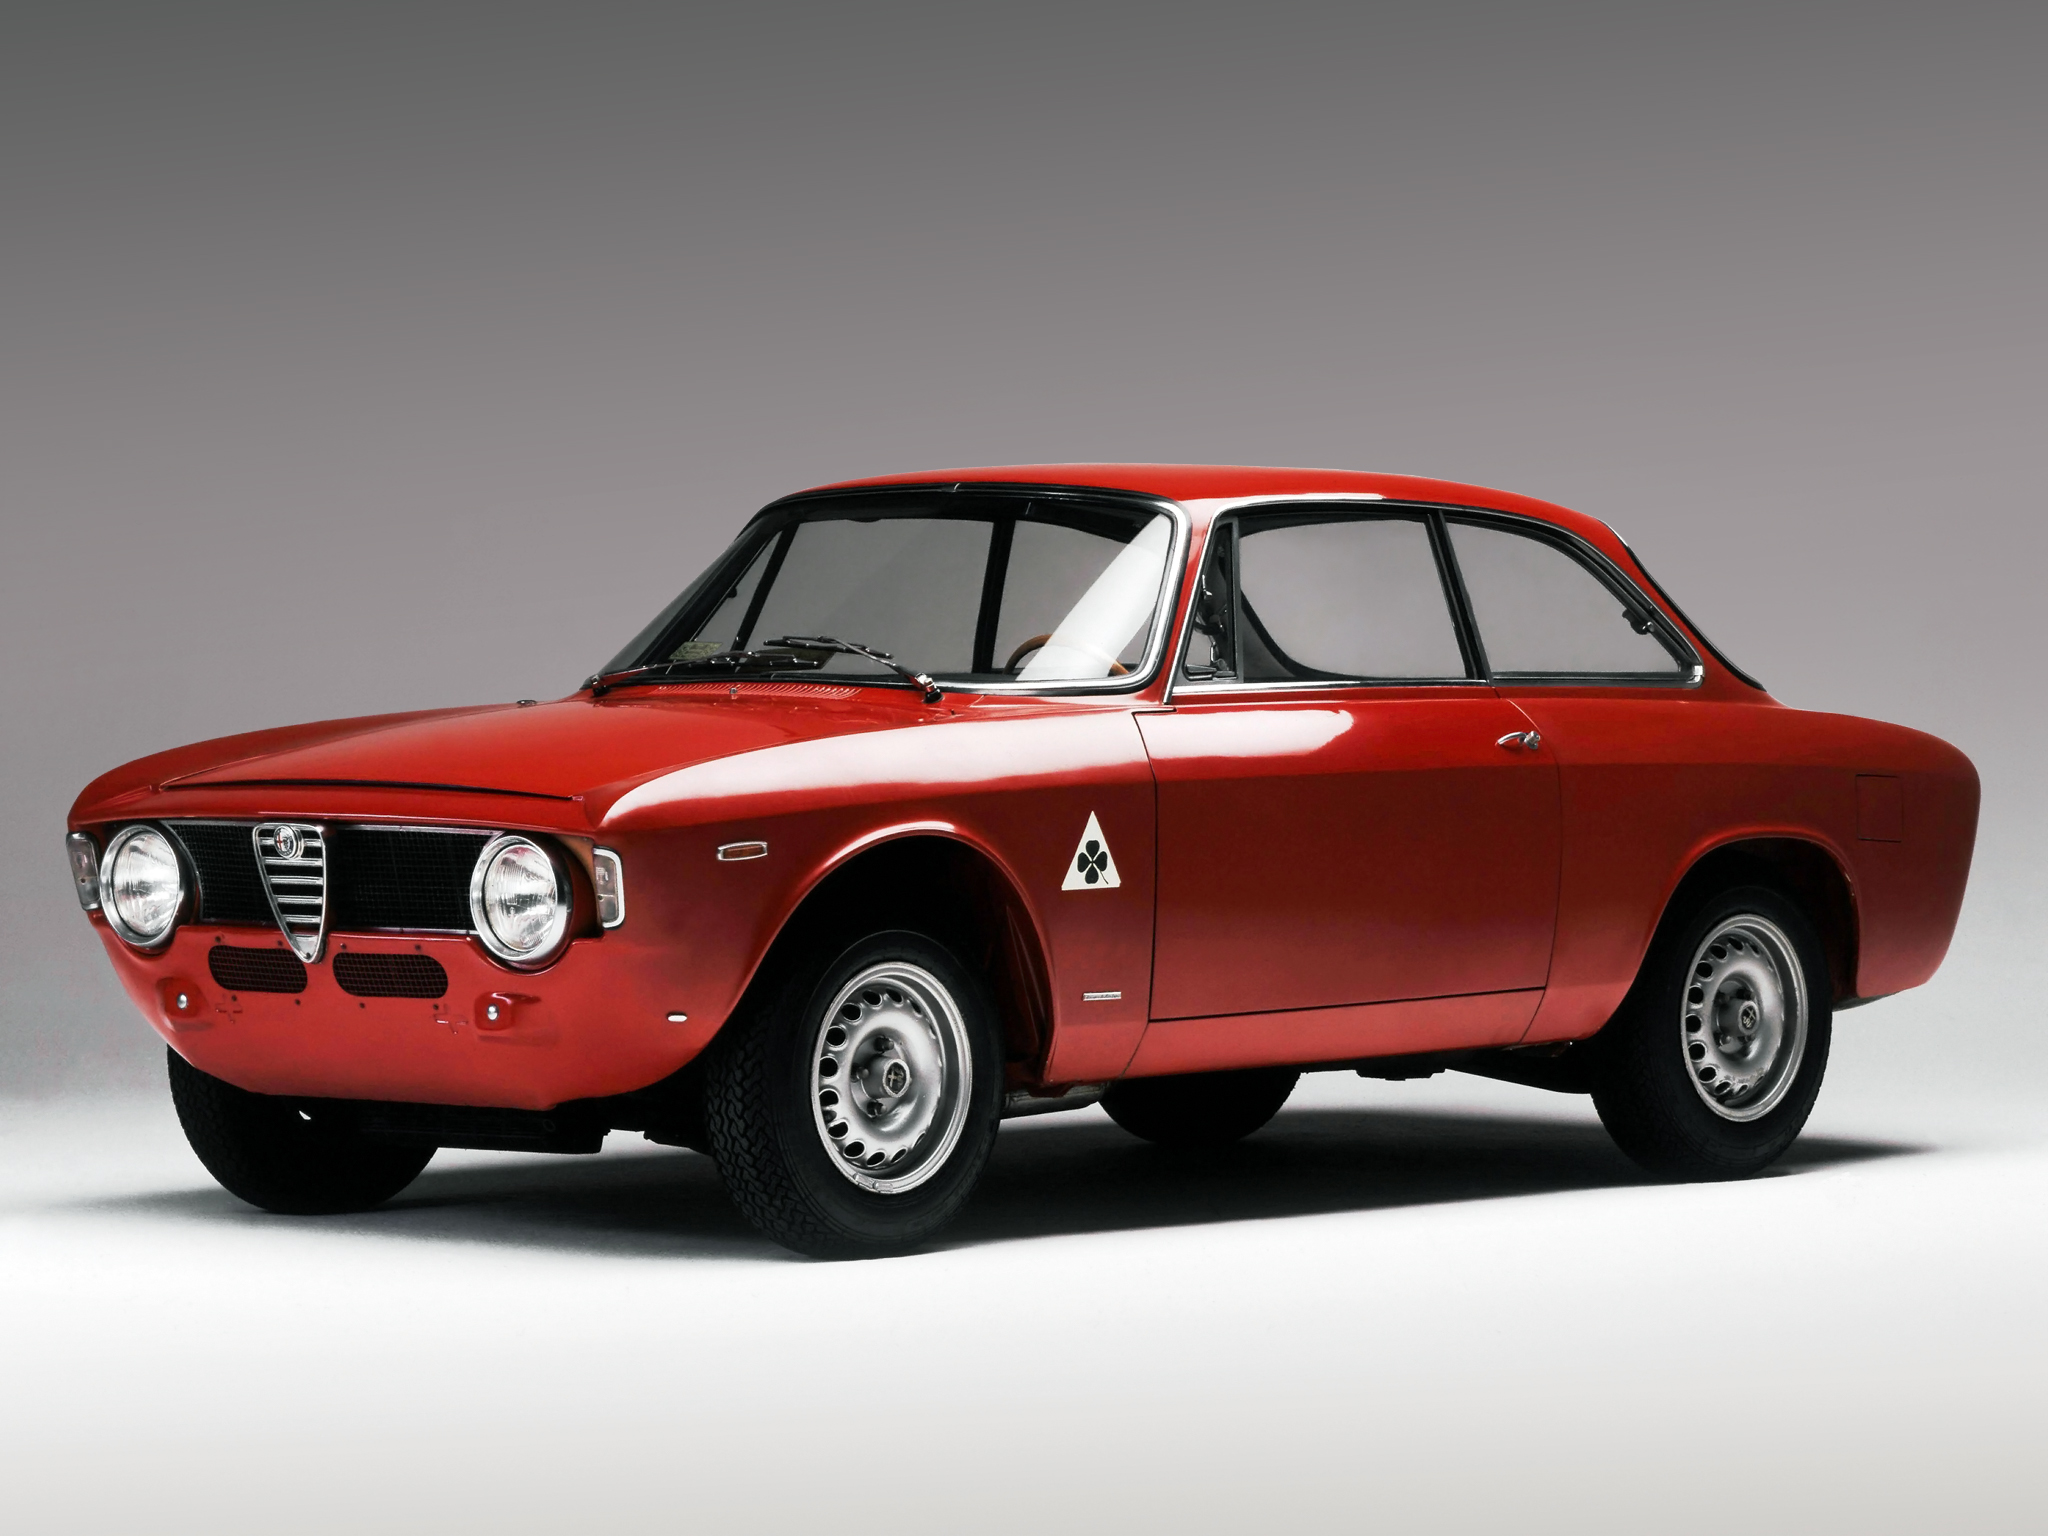 Most Viewed Alfa Romeo Giulia Gta Wallpapers 4k Wallpapers